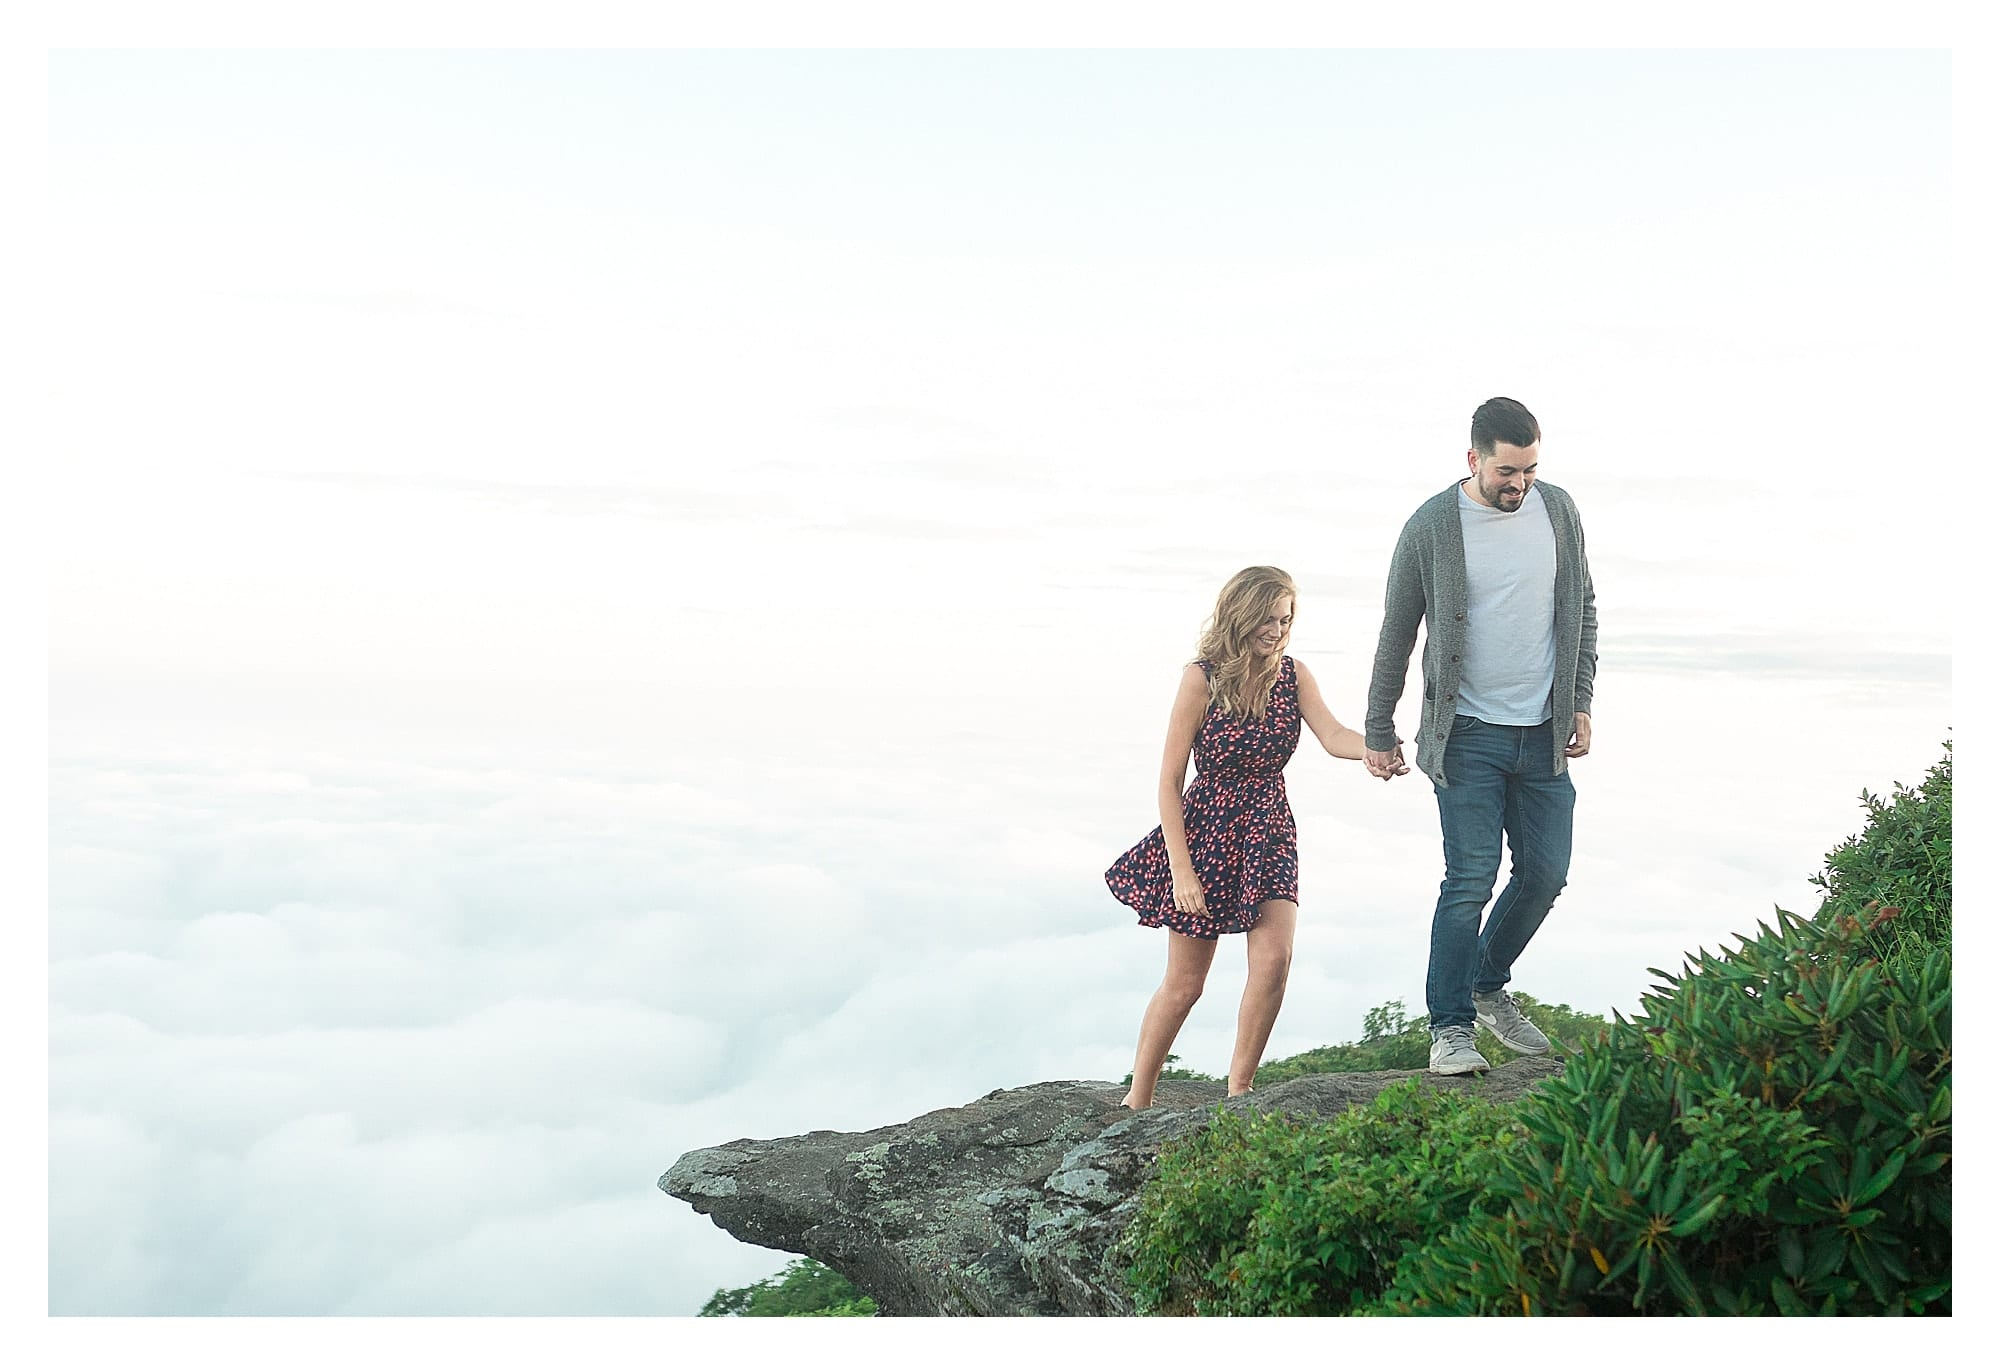 Engaged couple holding hands while walking on mountains edge